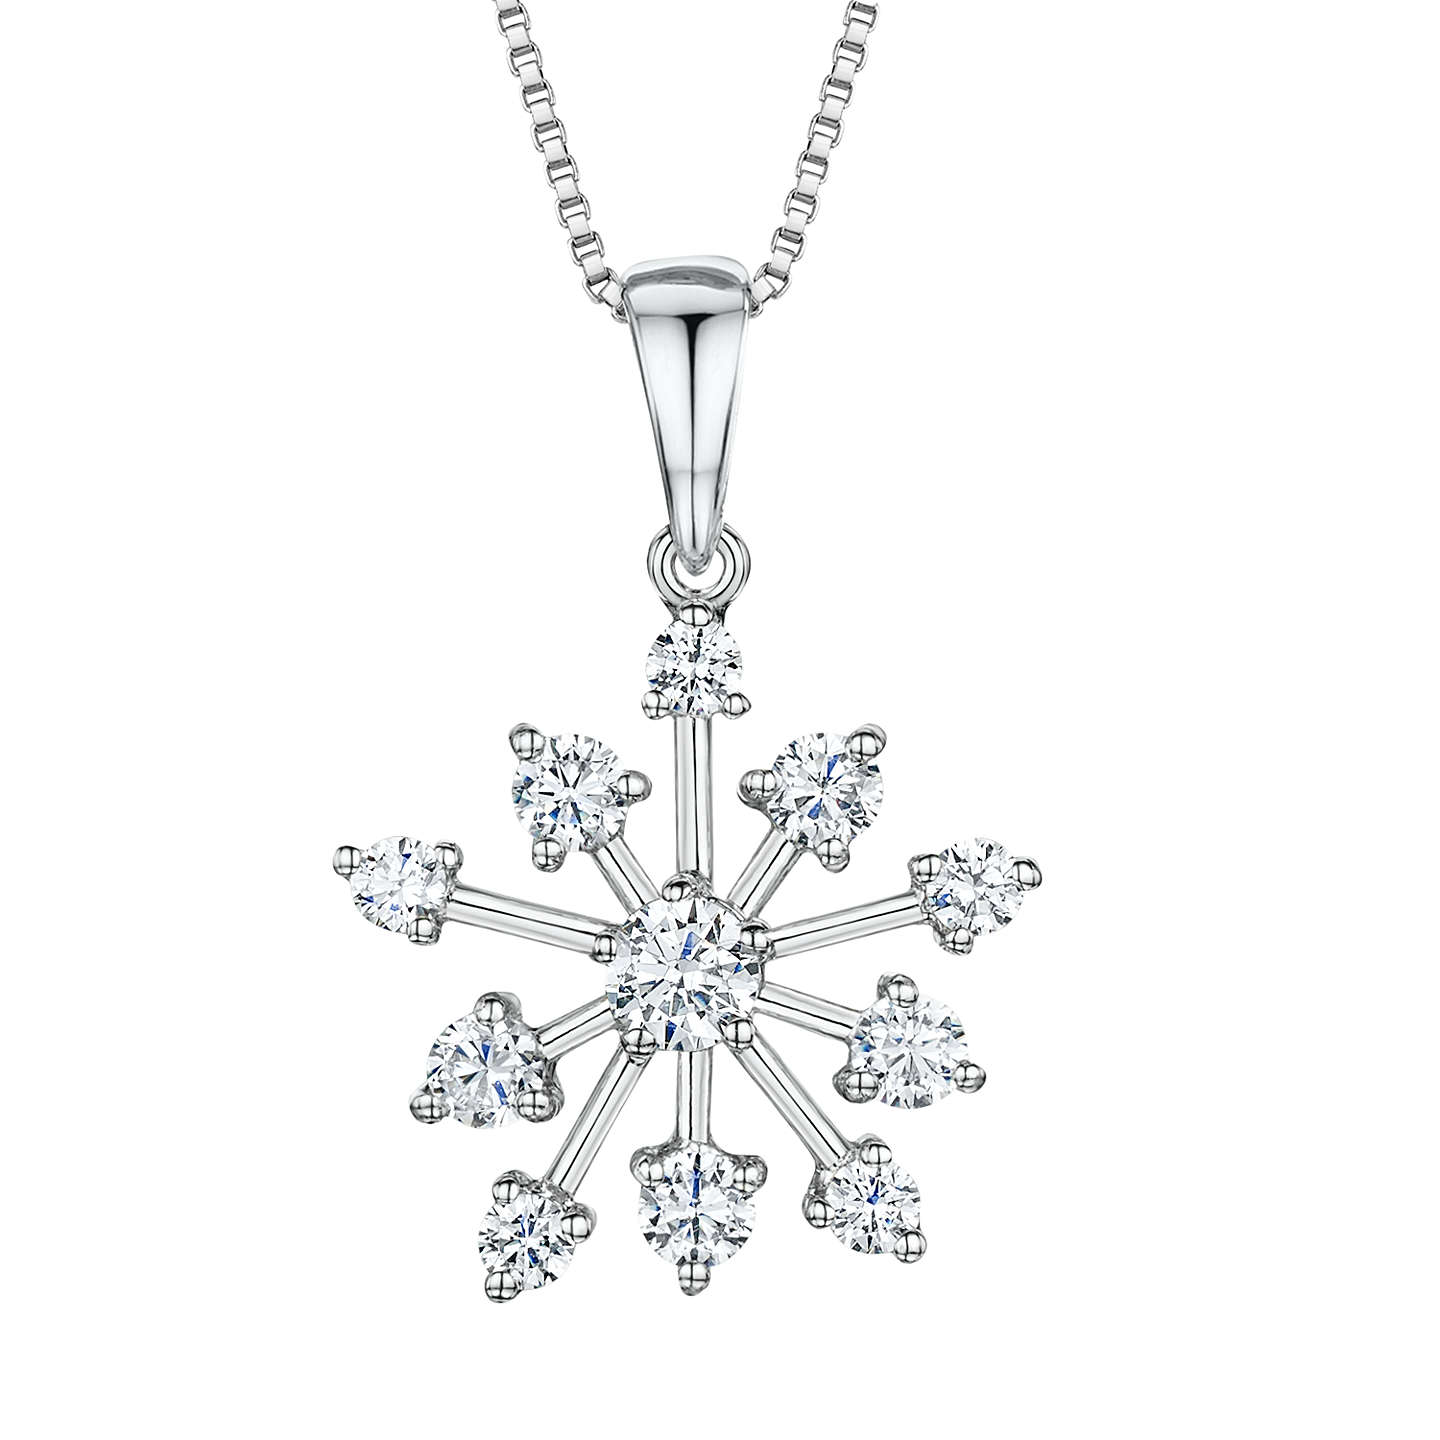 half elsa playing wiki role cb file image blood latest necklace snowflake s camp